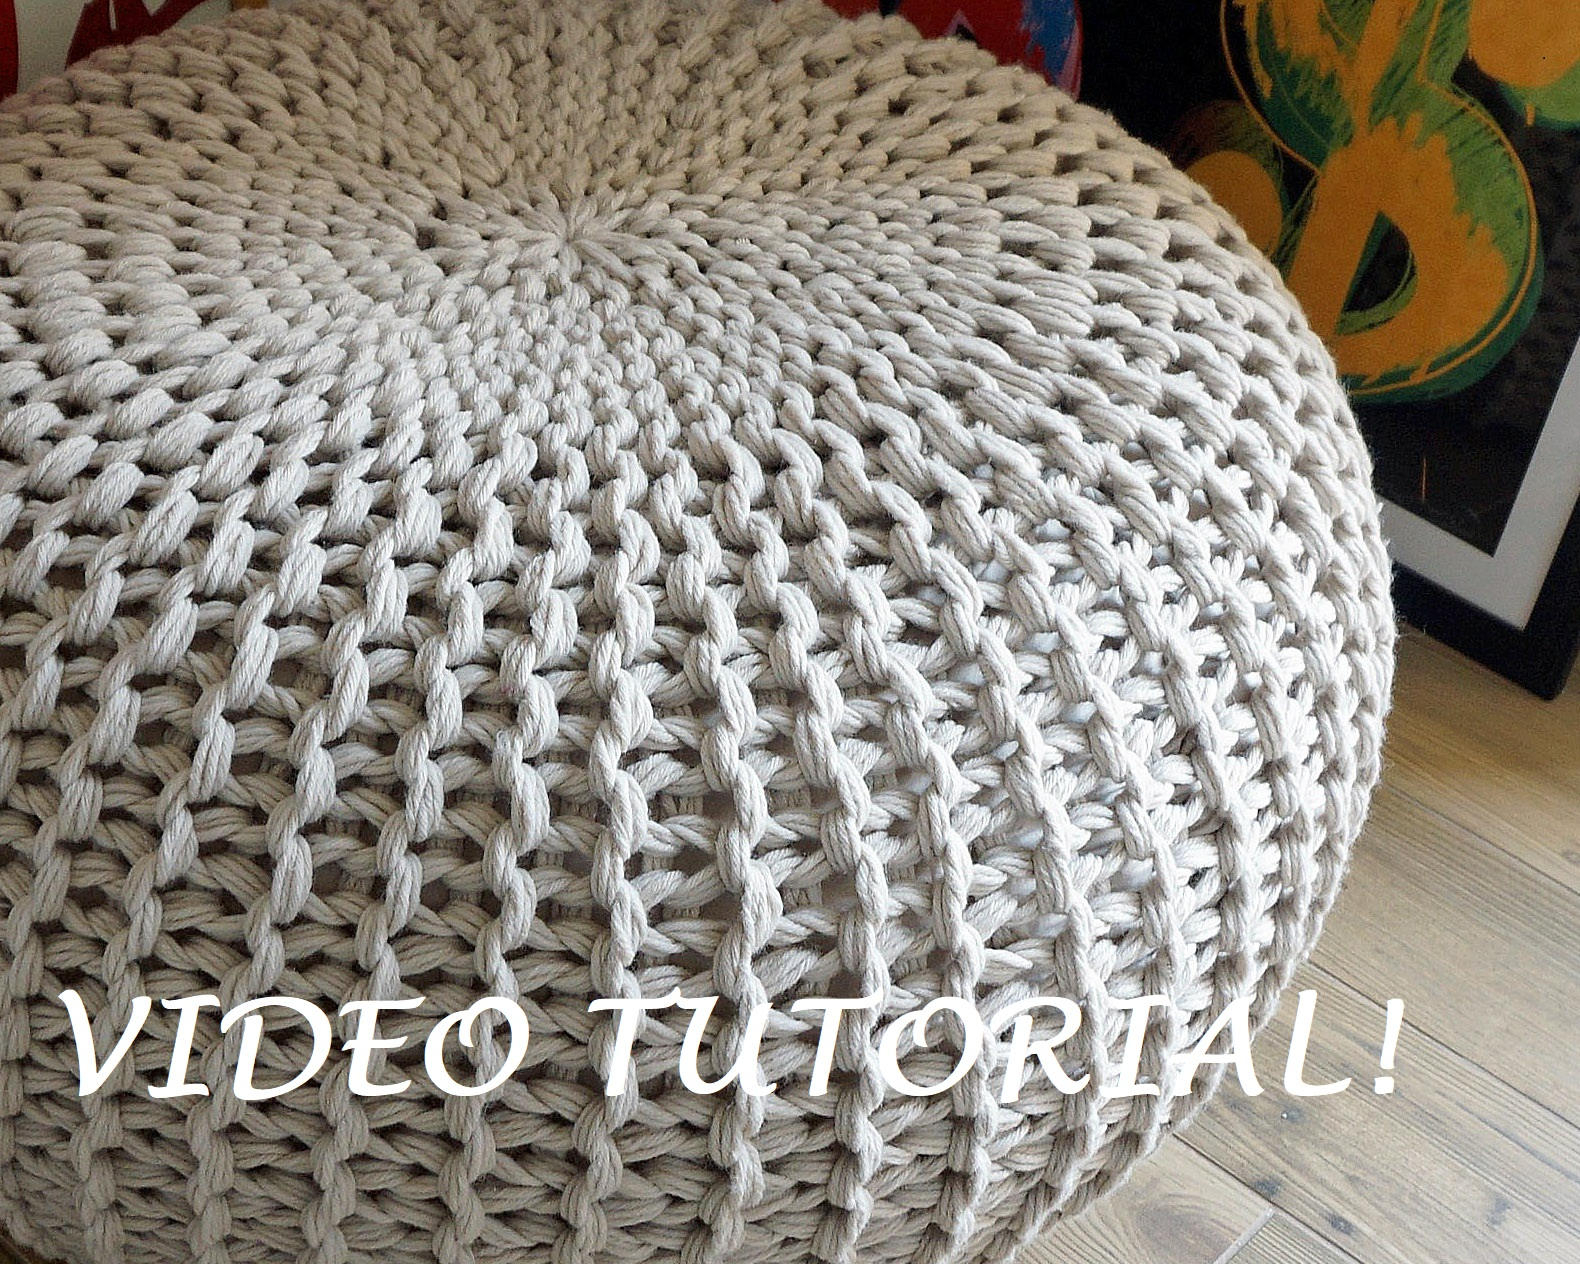 Knitted Pattern Knitting Pattern Knitted Pouf Pattern Poof Knitting Ottoman Footstool Home Decor Pillow Bean Bag Pouffe Floor Cushion Medium And Large